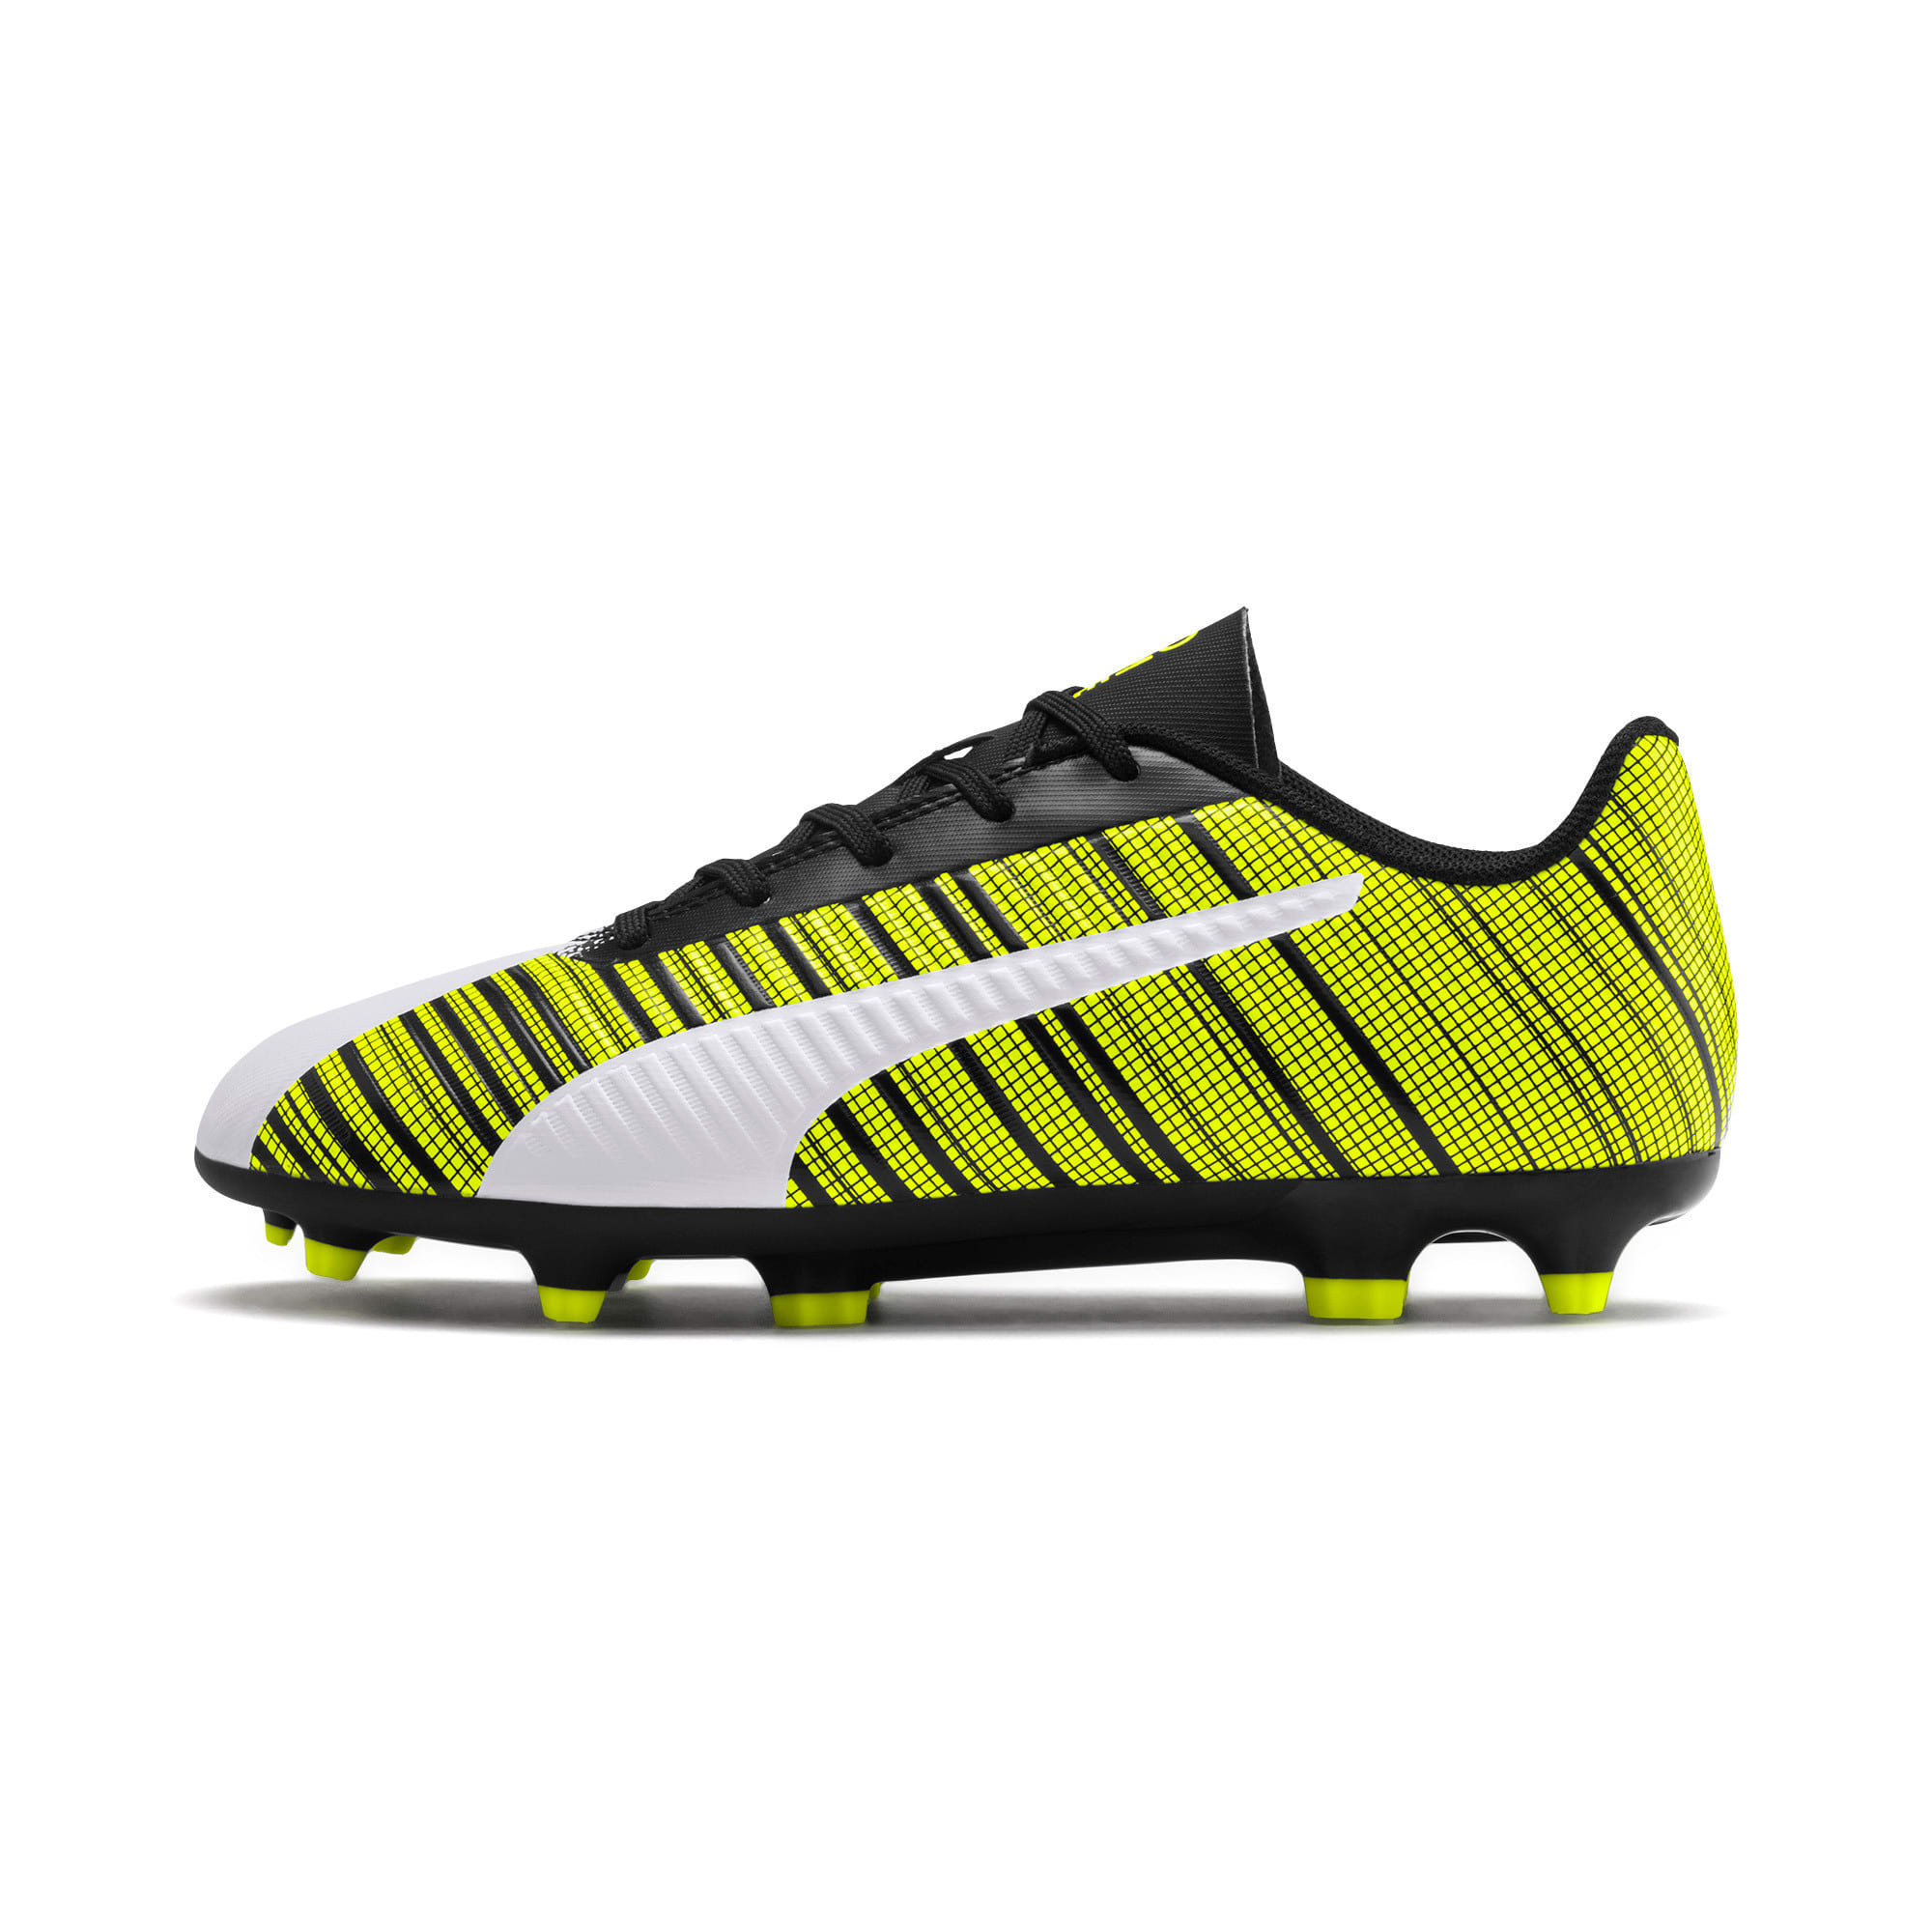 Thumbnail 1 of PUMA ONE 5.4 FG/AG Youth Fußballschuhe, White- Black-Yellow Alert, medium